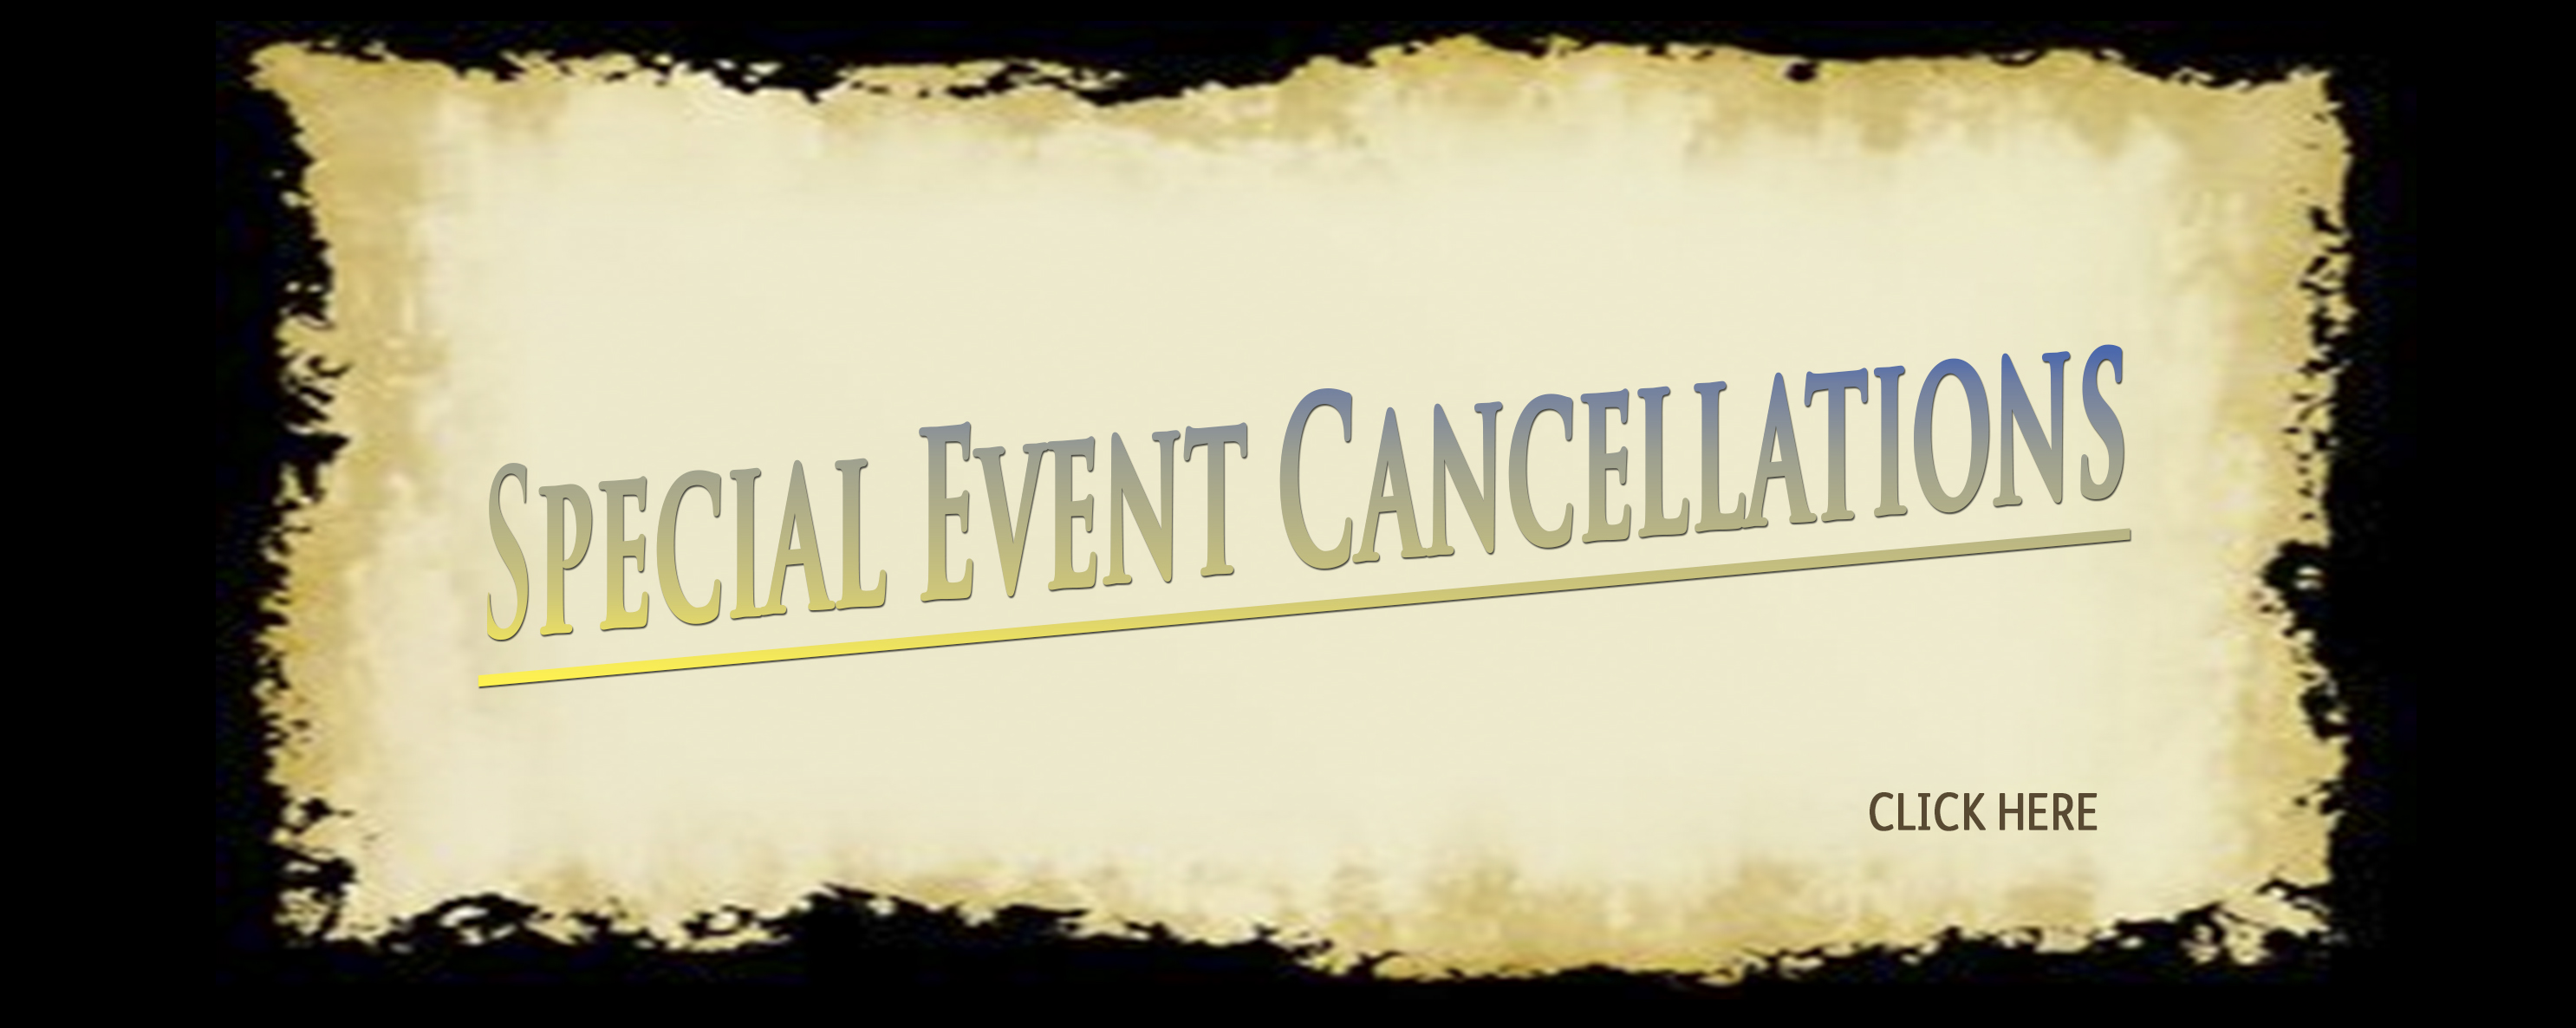 Special Event Cancellations-two-rotator